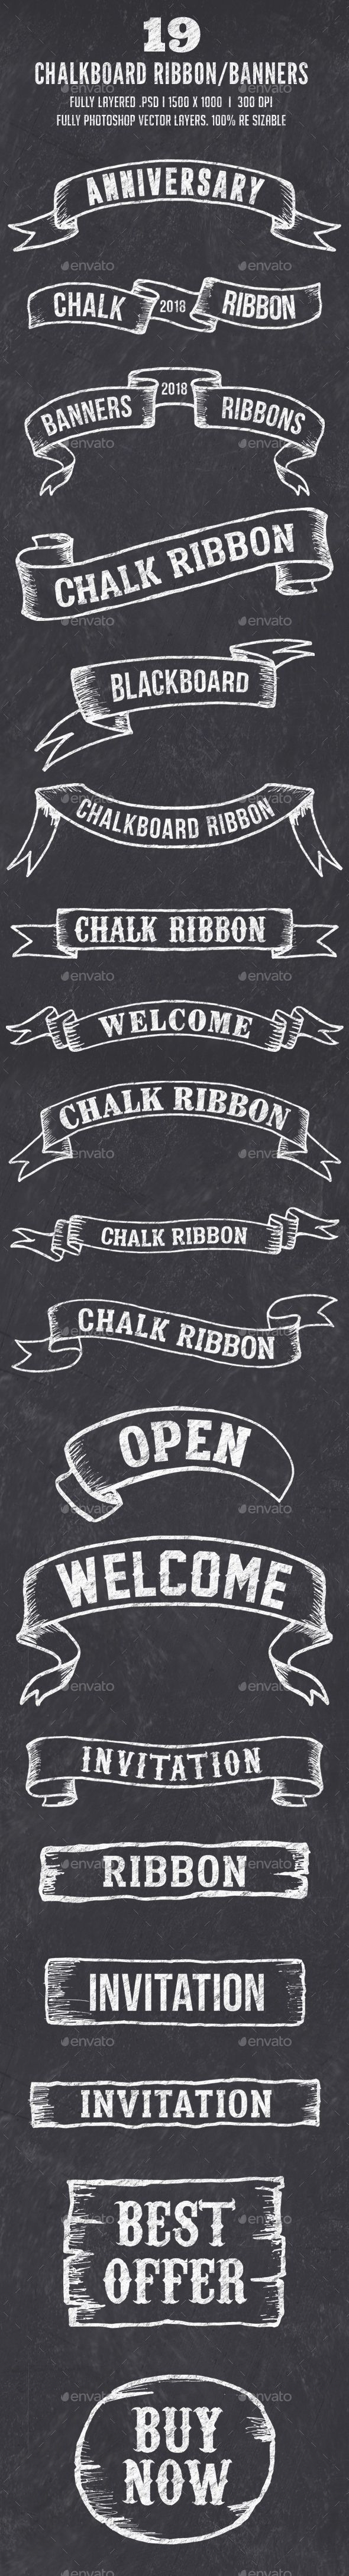 19 Chalk Ribbon Banners / Banner Set - #Badges & Stickers #Web Elements Download here: https://graphicriver.net/item/19-chalk-ribbon-banners-banner-set/19718879?ref=alena994